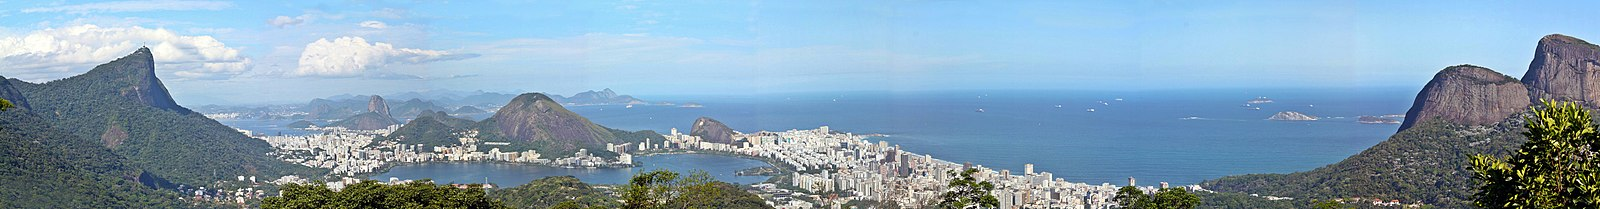 Panorama of the city of Rio de Janeiro highlighting the mountains of Corcovado (left), Sugarloaf (center, background) and Two Brothers (right), from the Chinese Belvedere